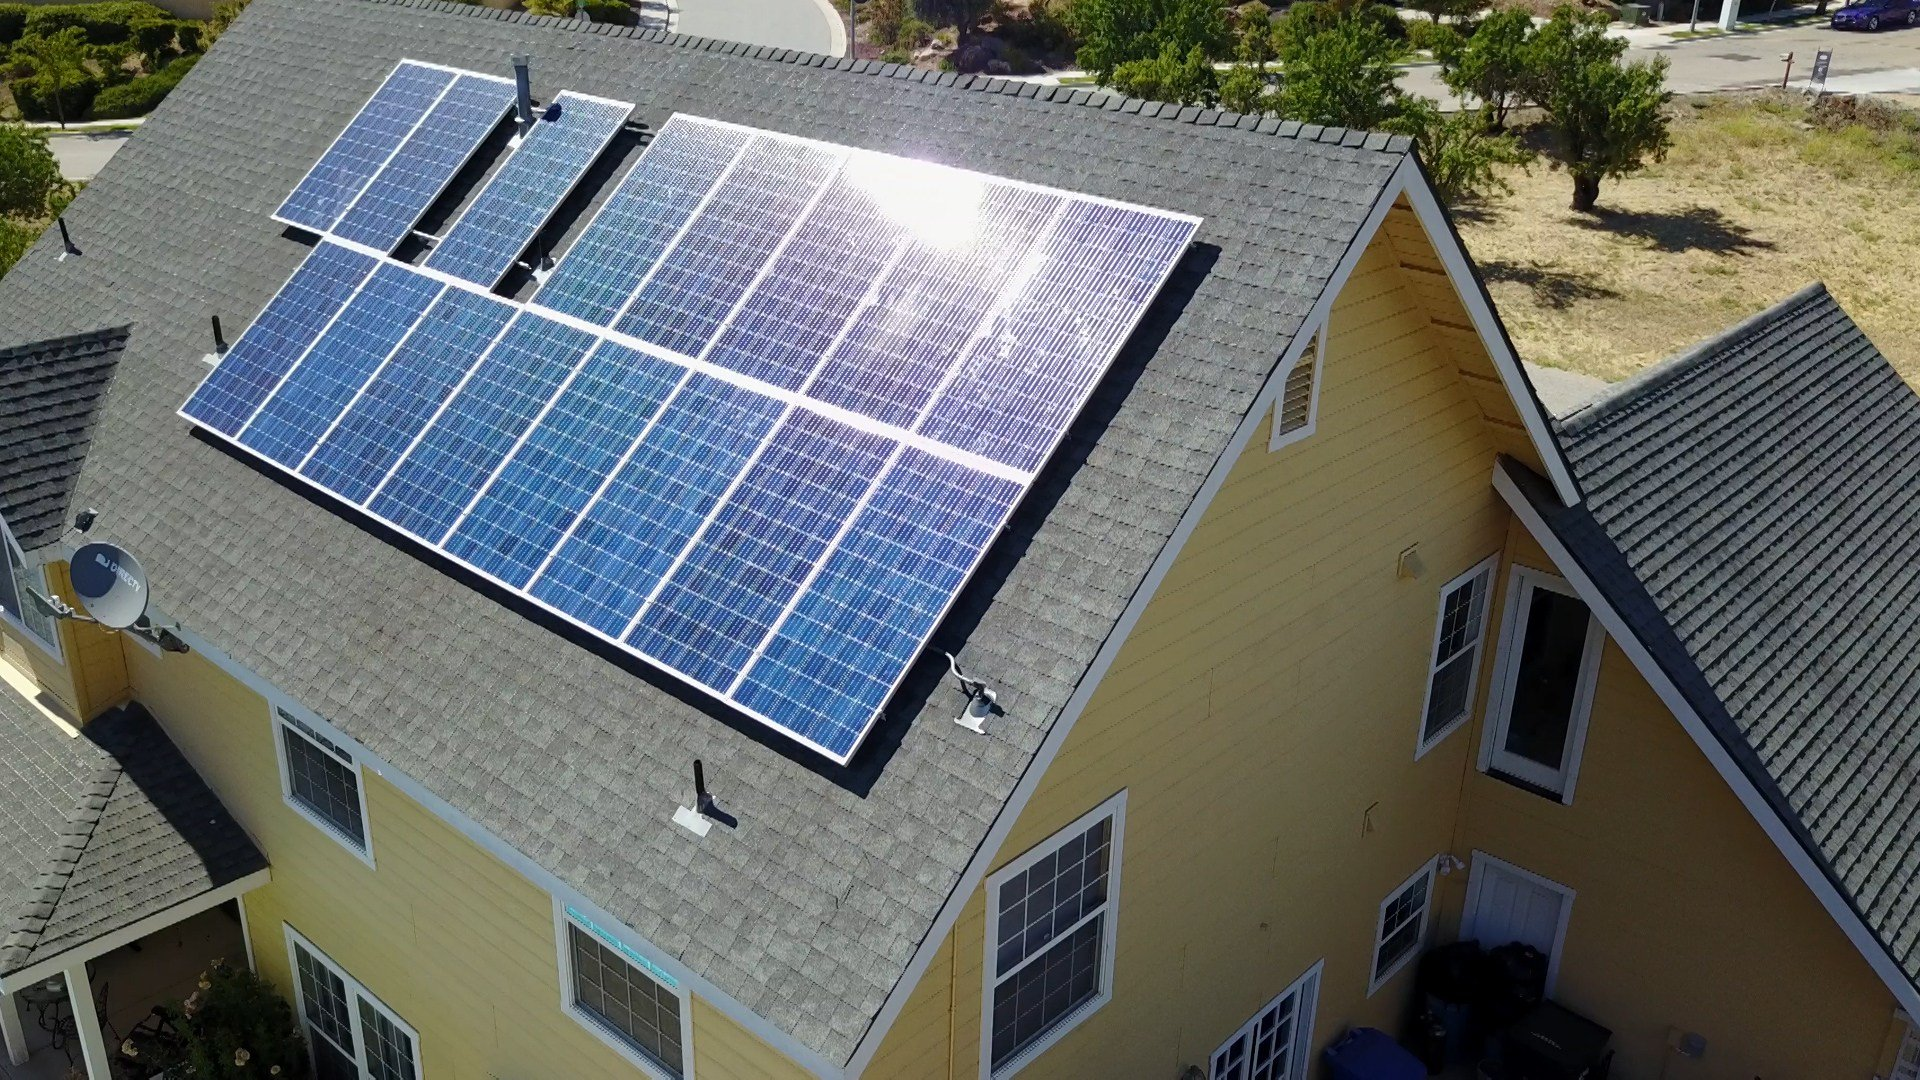 California moves to require solar panels on all new homes by 2020